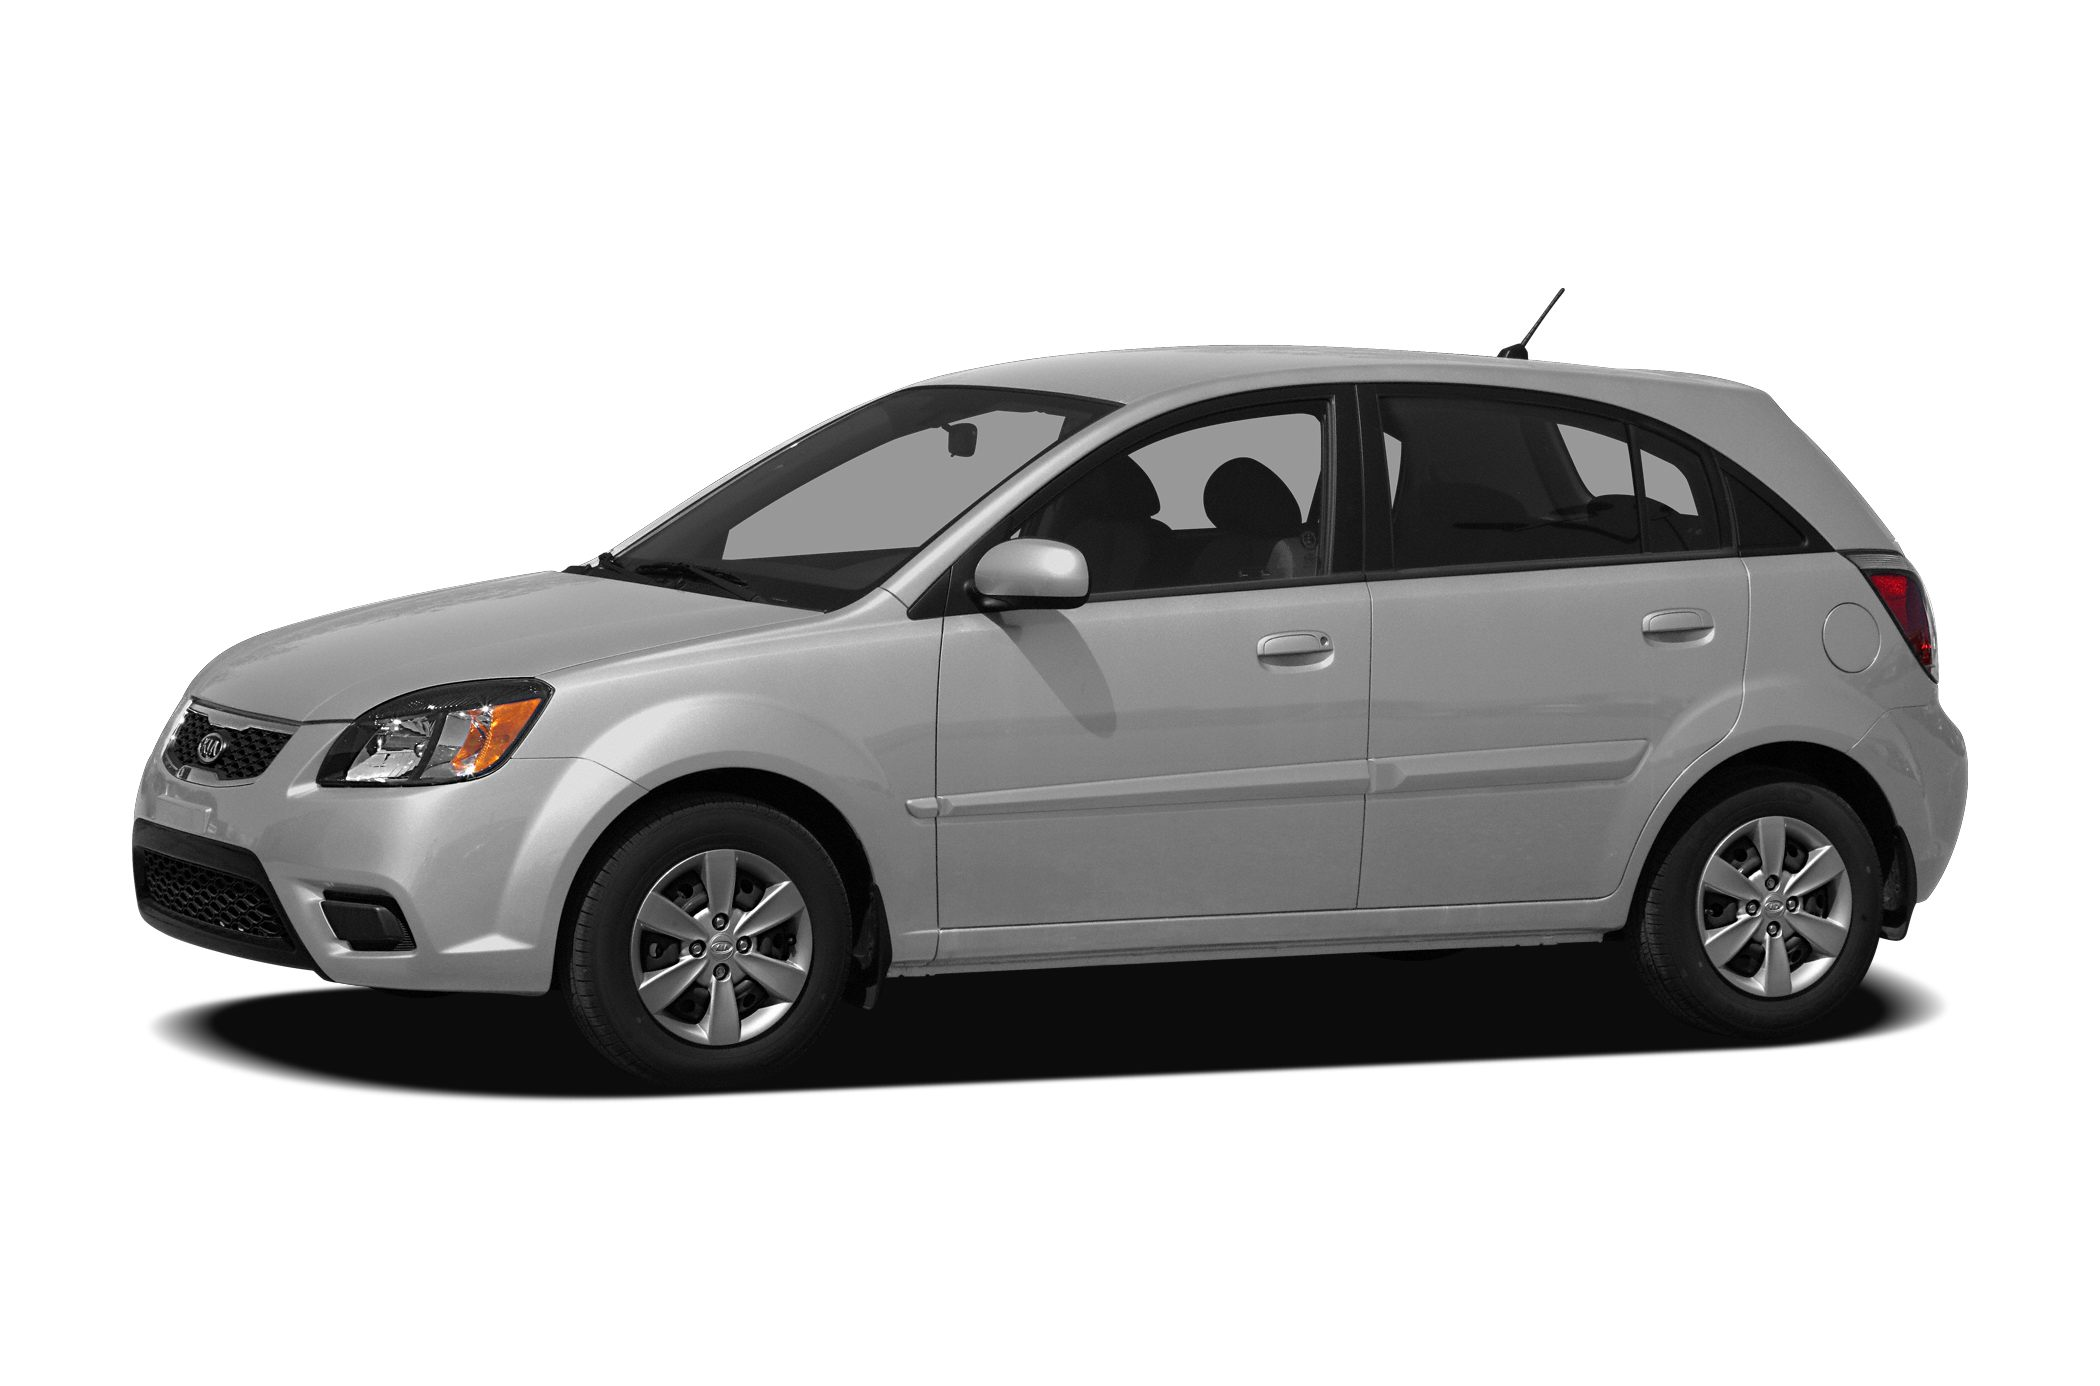 2011 Kia Rio5 Information 2009 Rio Sedan Engine Diagram